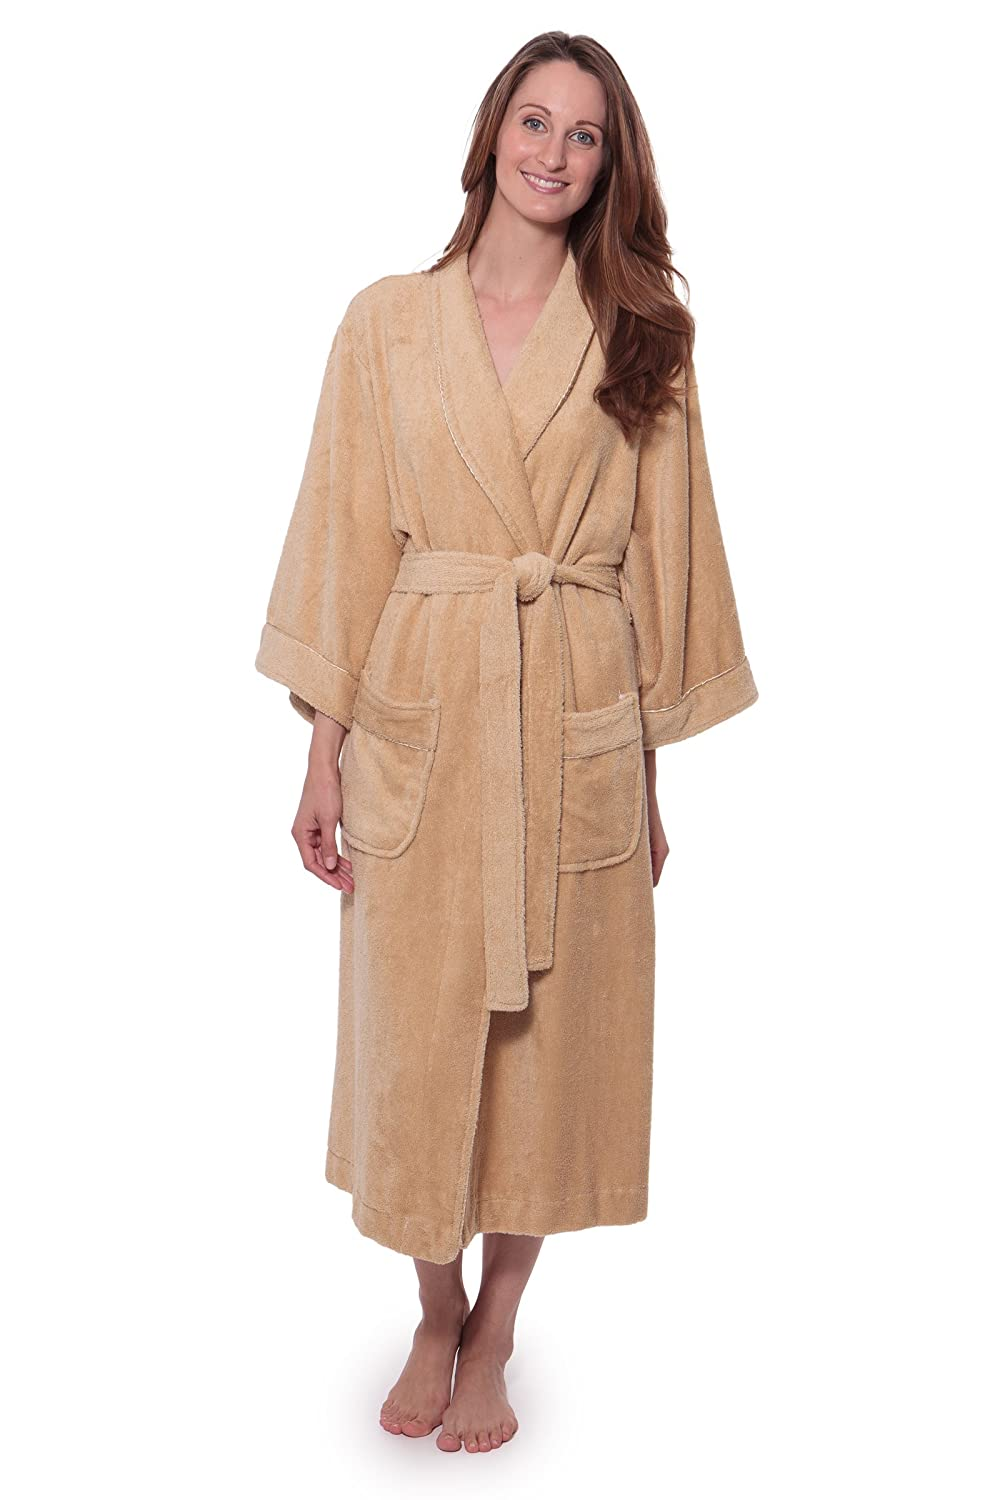 13ec0c1661 Women s Luxury Terry Cloth Bathrobe - Bamboo Viscose Robe by Texere  (Ecovaganza) at Amazon Women s Clothing store